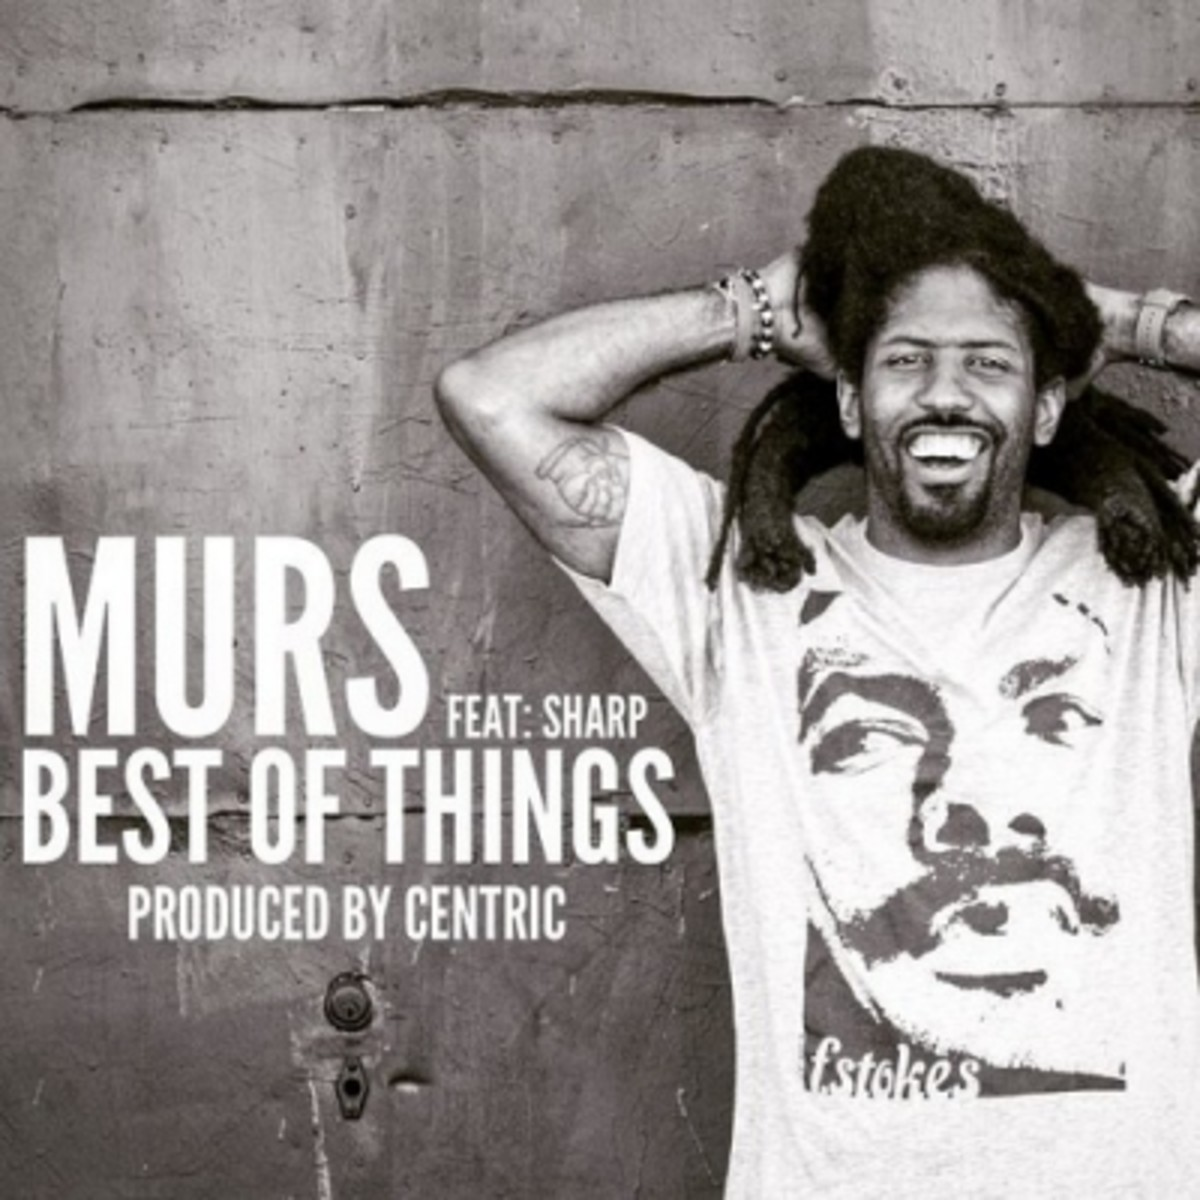 murs-best-of-things.jpg